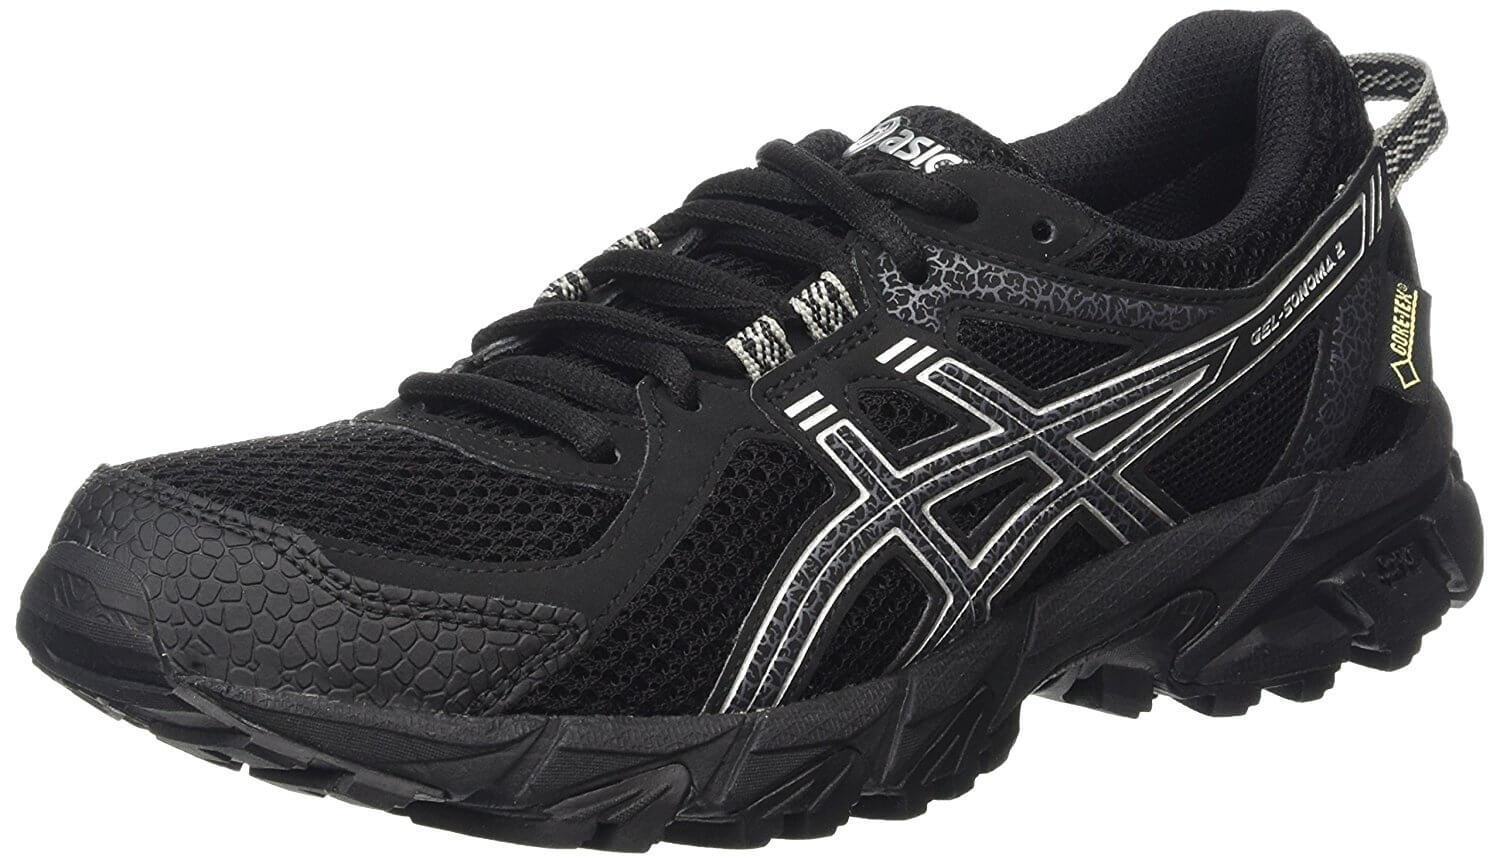 c908171bc5bc Asics Gel Sonoma 2 GTX Review - Buy or Not in Apr 2019